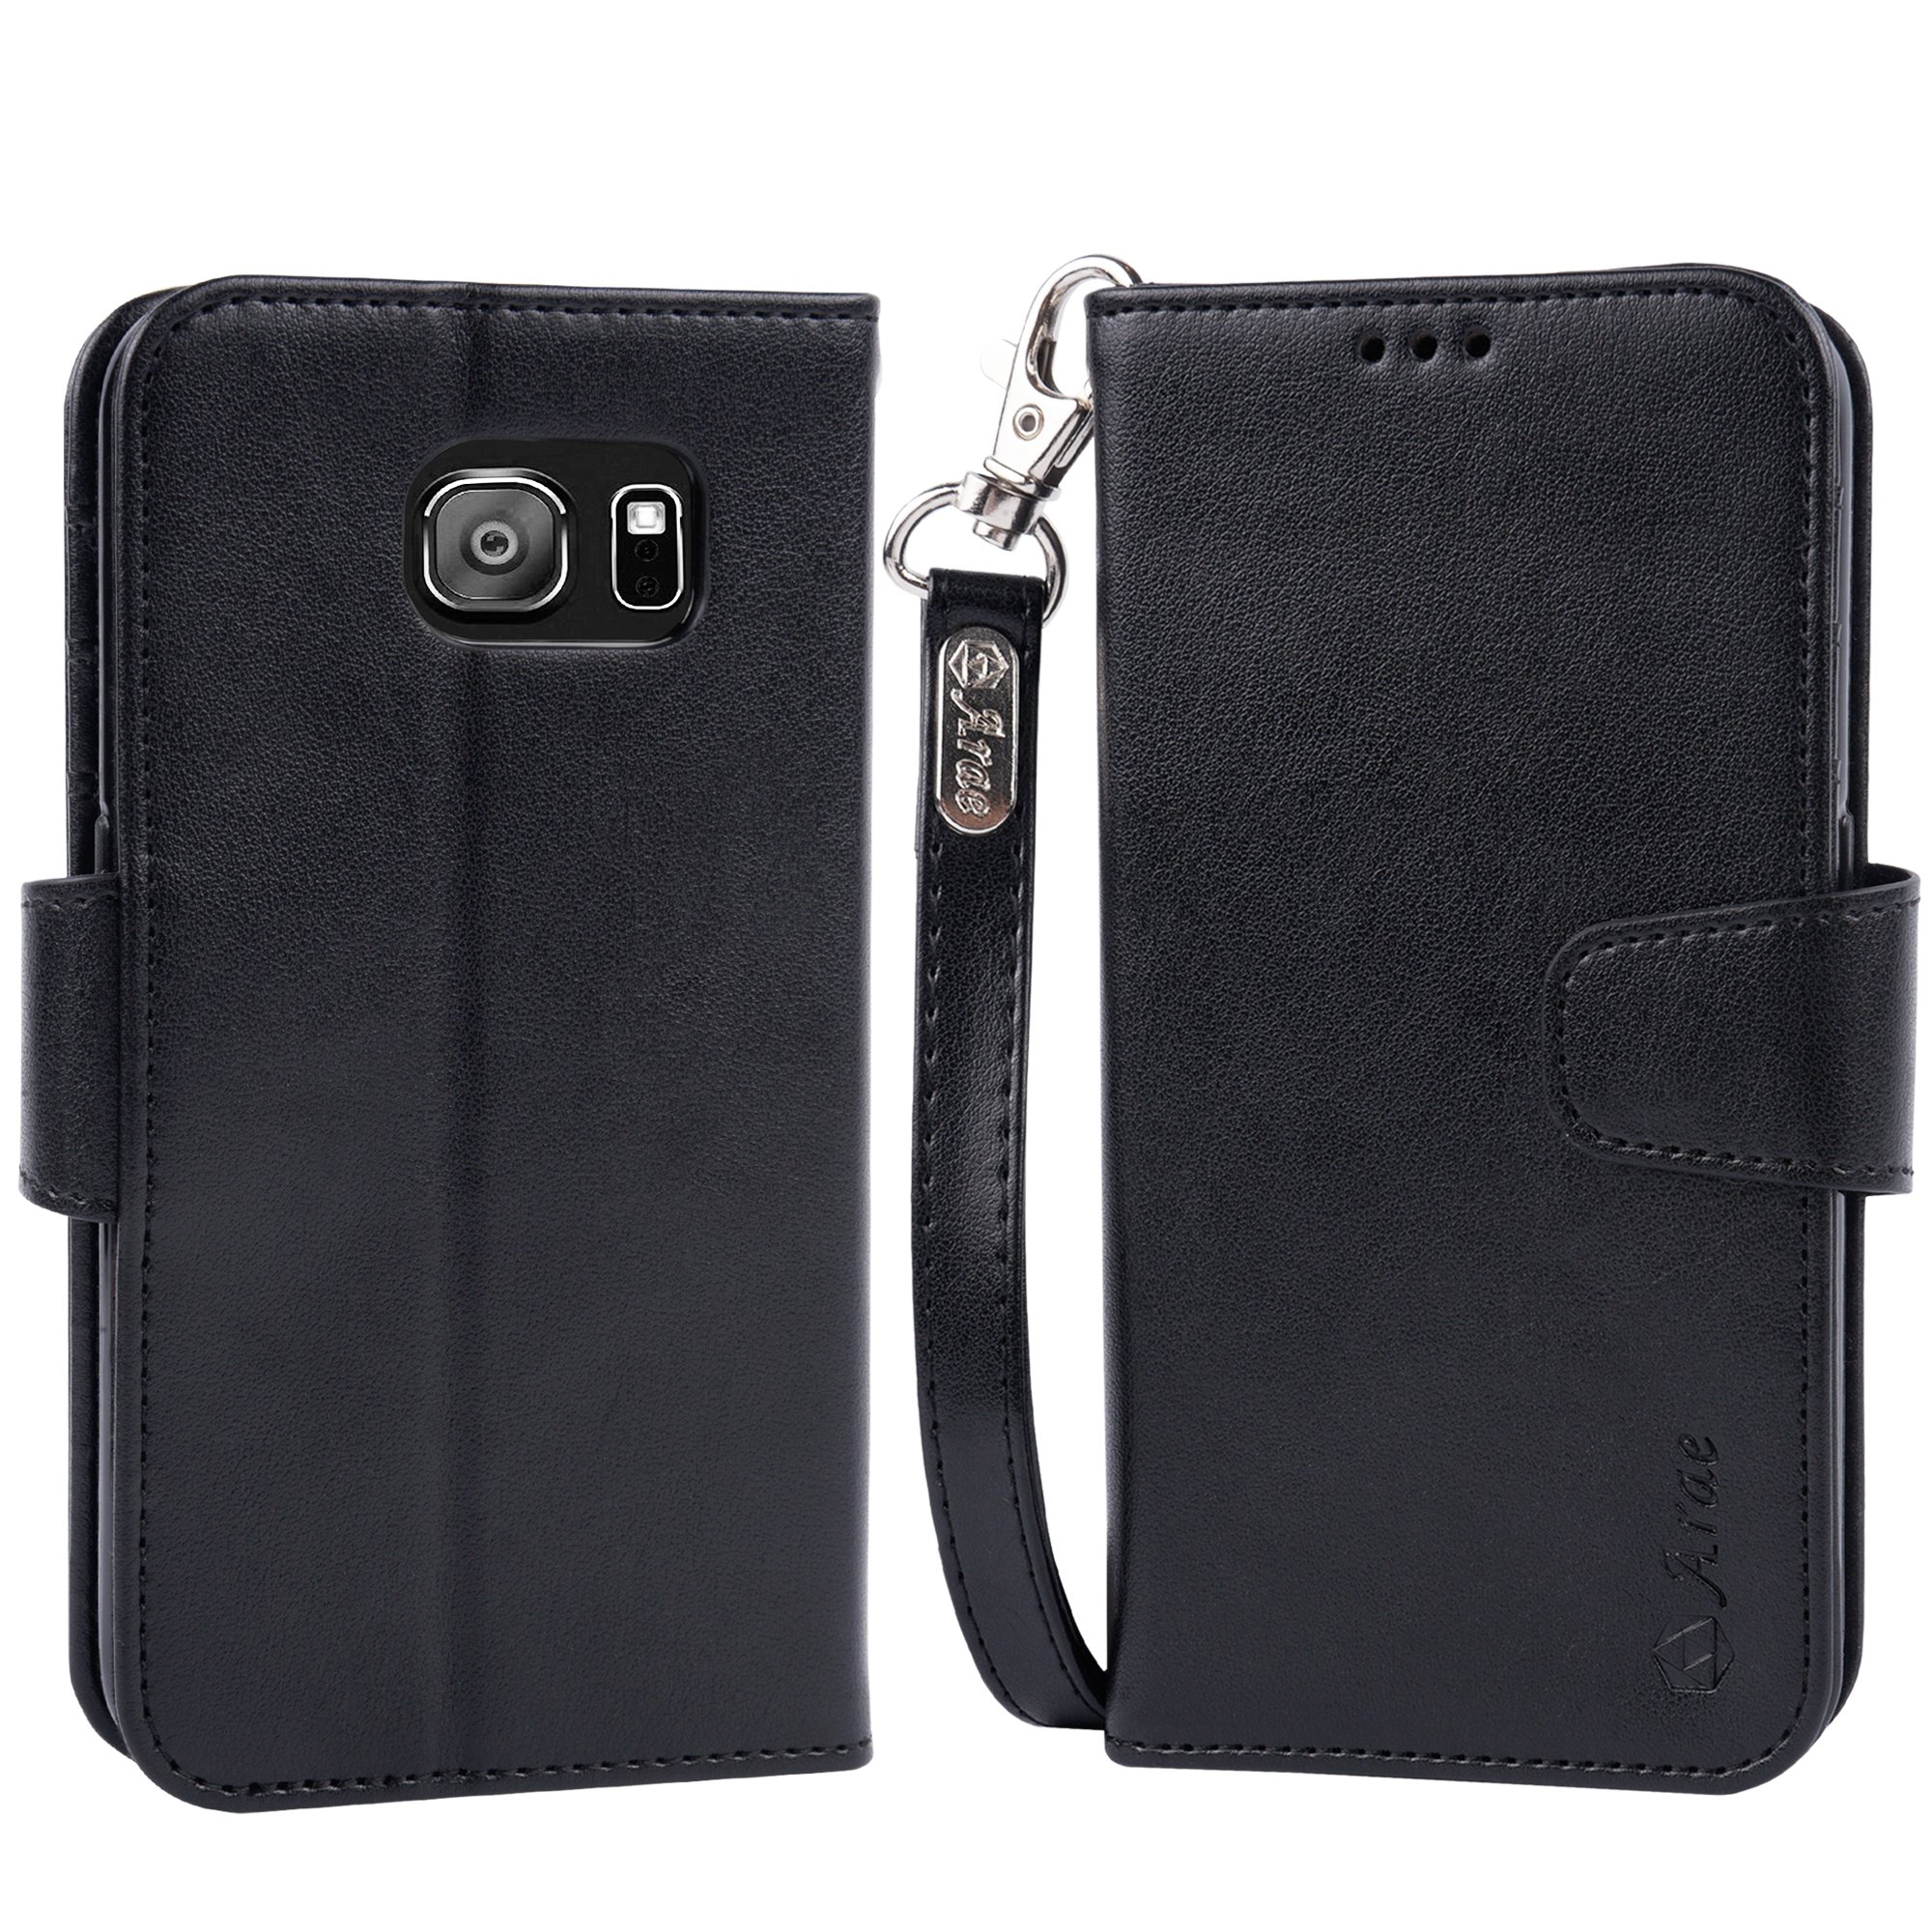 Arae Galaxy S6 Case, Samsung Galaxy S6 wallet case, [Wrist Strap] Flip Folio [Kickstand Feature] PU leather wallet case with ID&Credit Card Pockets For Samsung Galaxy S6 (Black) by Arae (Image #2)